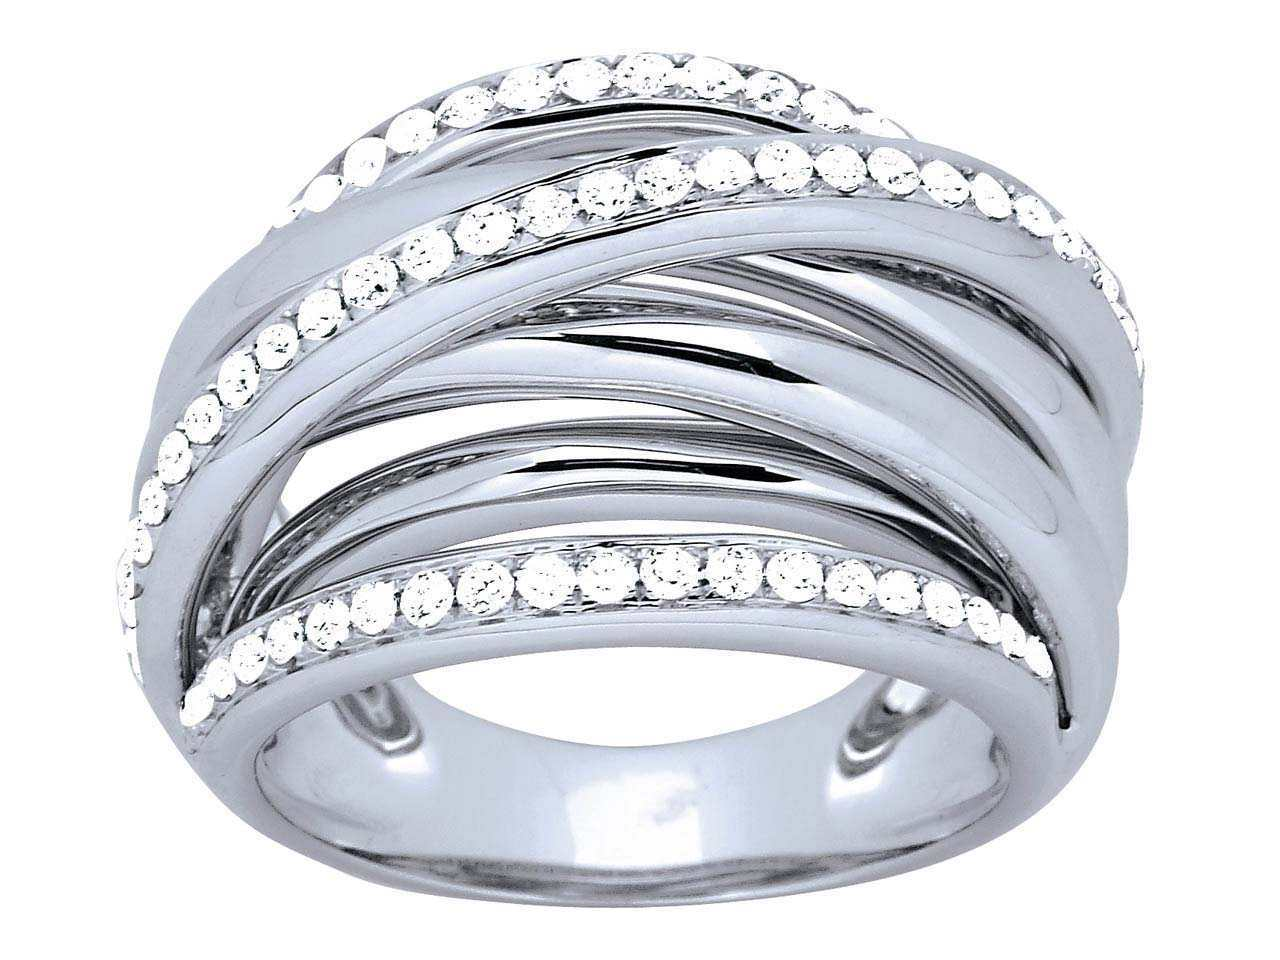 Bague croisée 5 rangs Or gris, diamants 0,82 ct